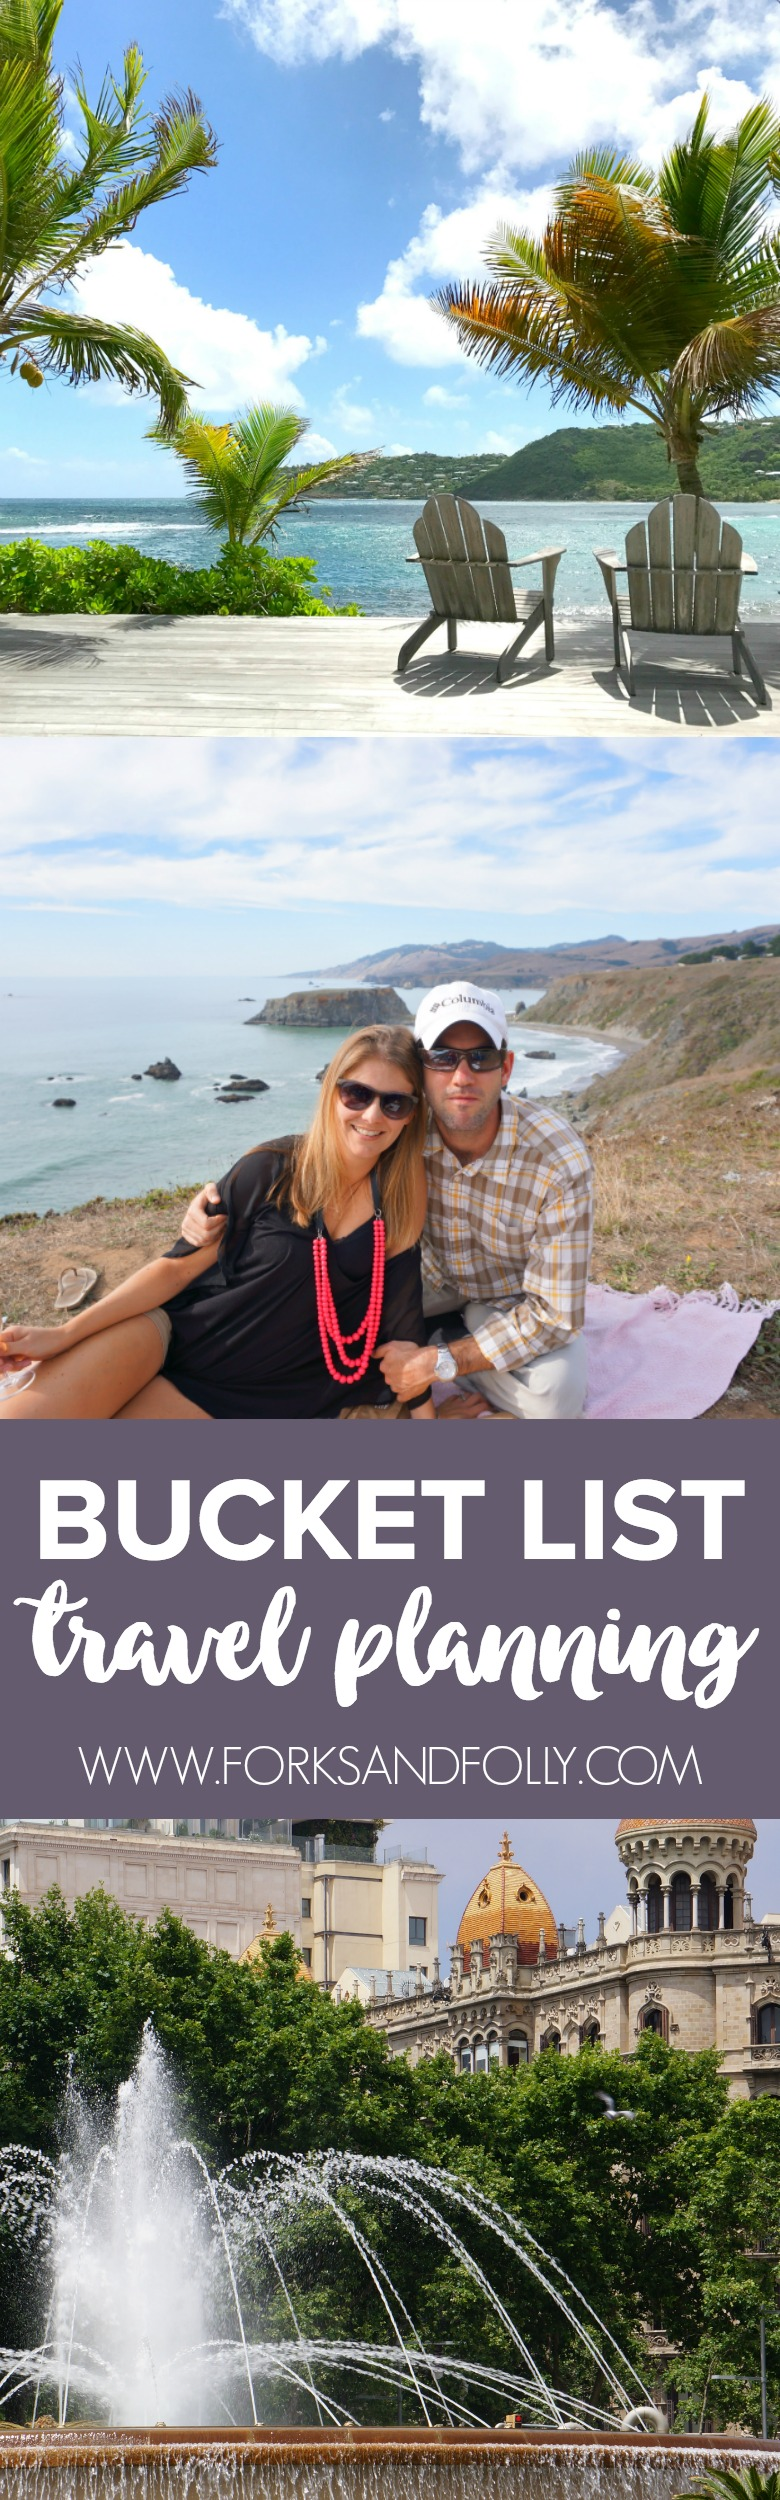 From day trips to bucket list travel planning, get the advice and inspiration for your next big adventure.  Seven must-read travel planning tips!